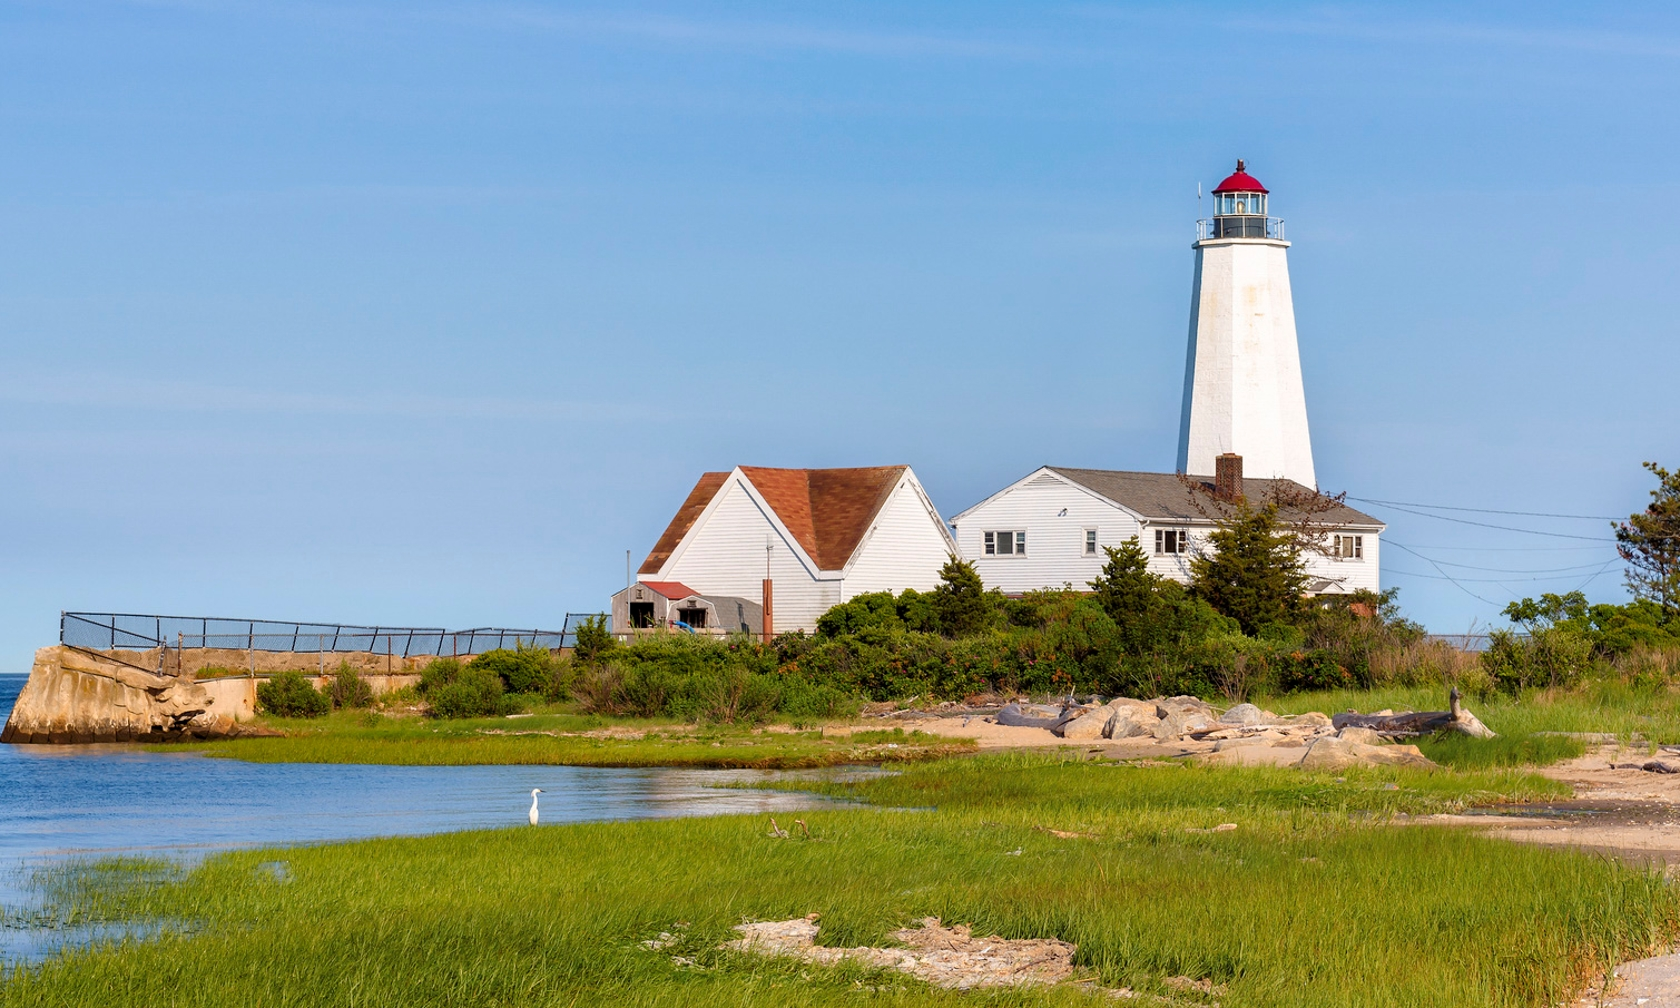 Vacation rentals in Connecticut